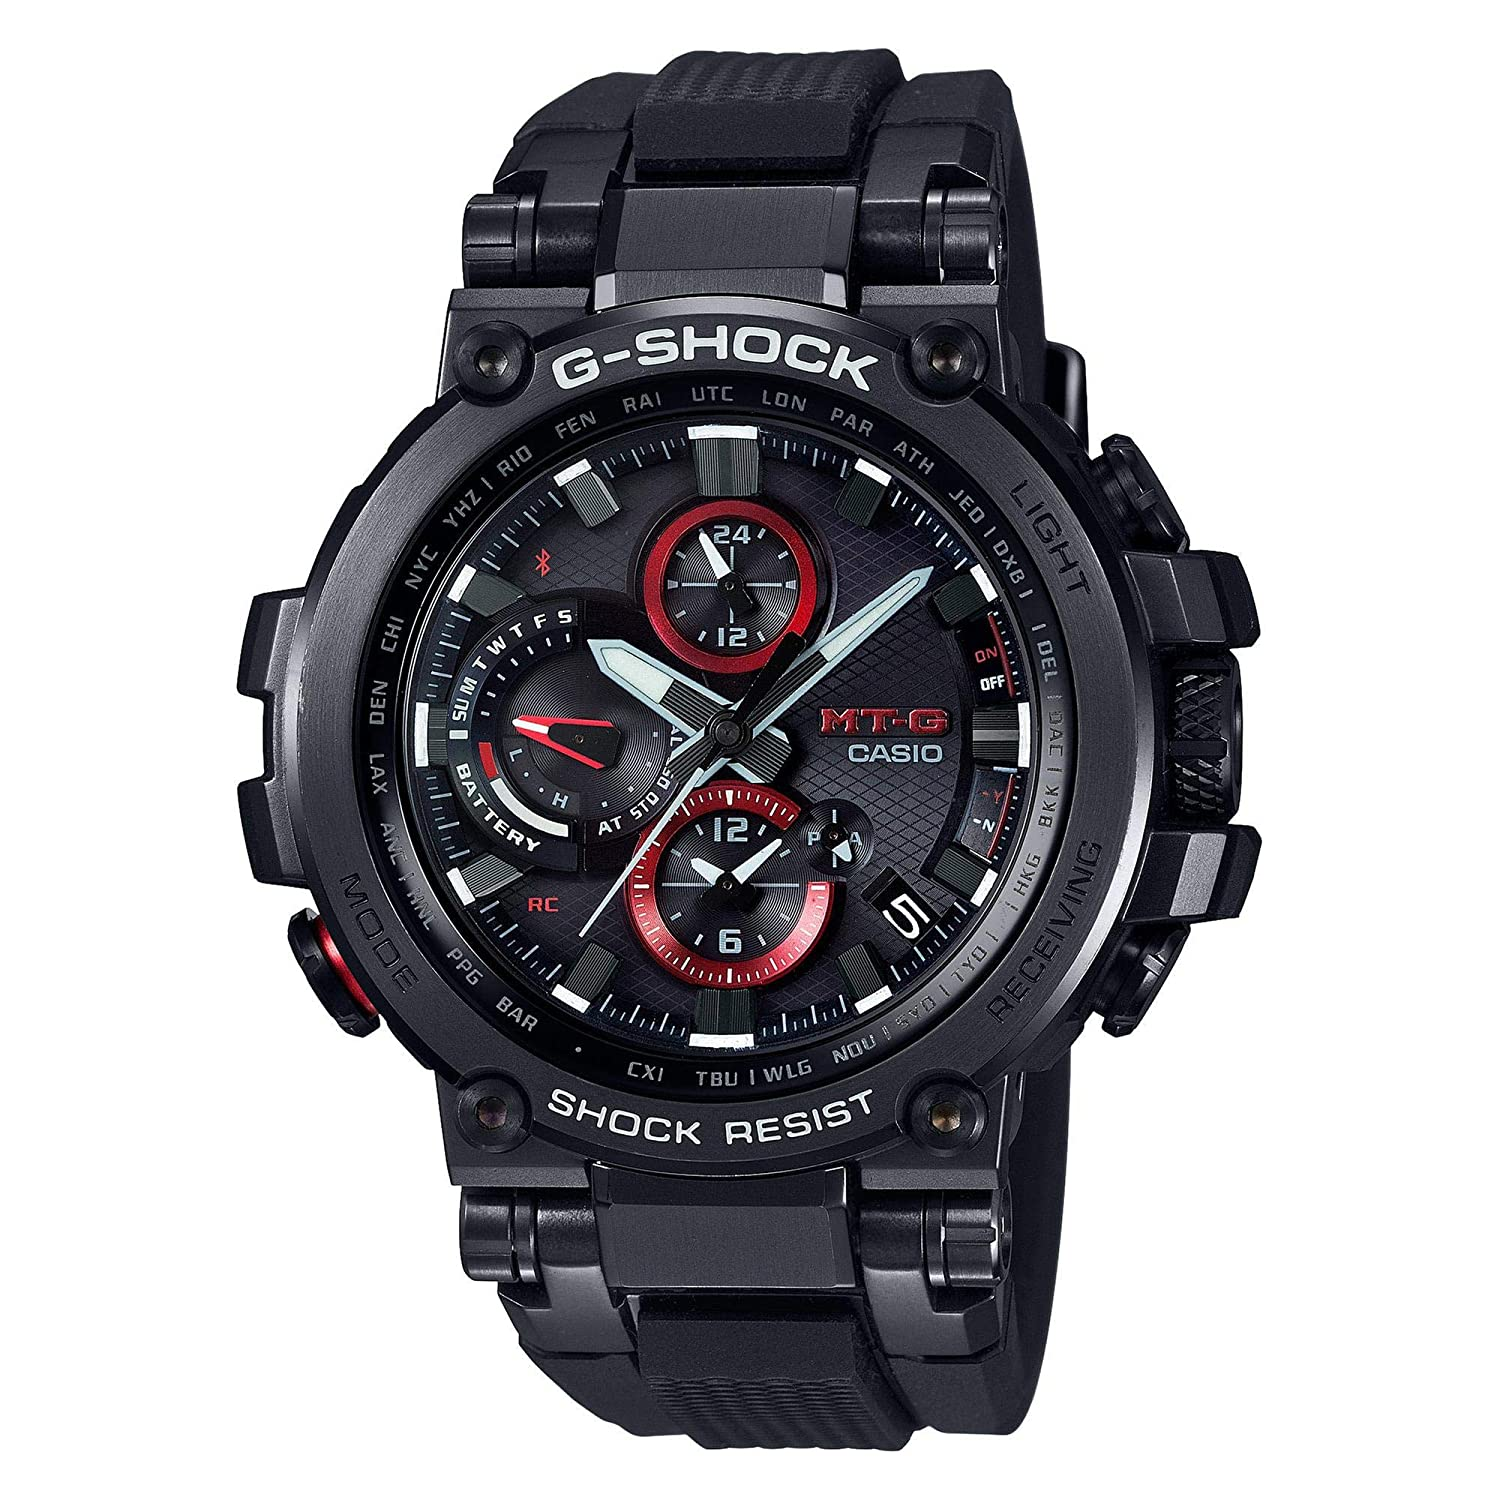 7367010f64a Amazon.com  Casio G-Shock MT-G Connected Black Watch MTG1000B-1A  Watches